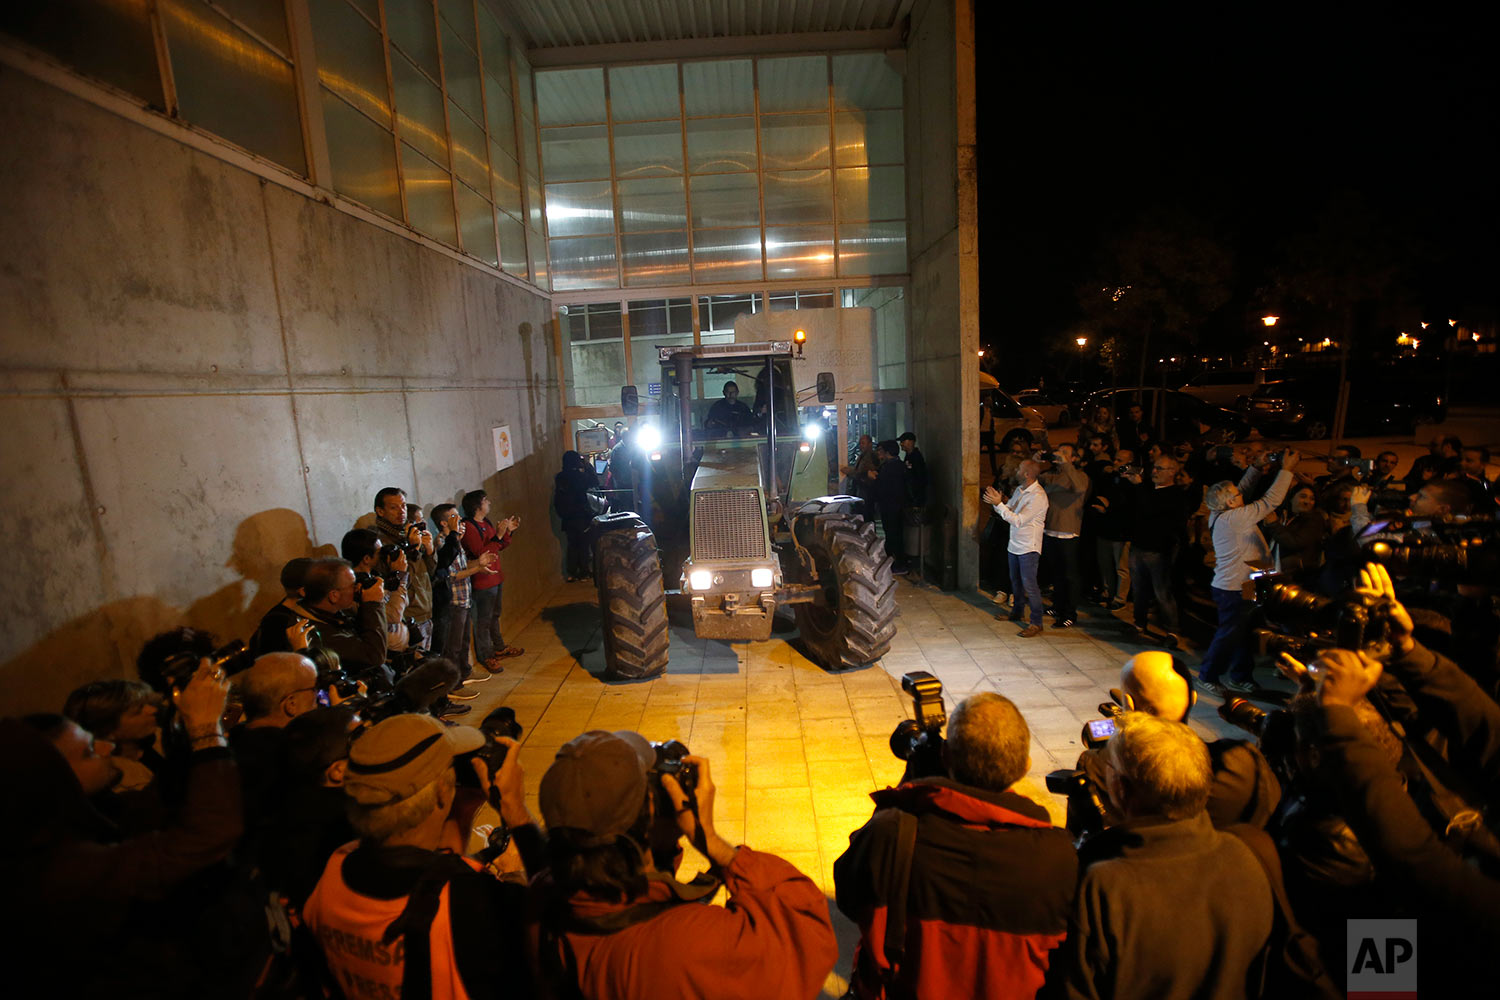 As journalists take pictures, a parked tractor blocks the door of a sports center, assigned to be a polling station by the Catalan government and where Catalan President Carles Puigdemont is expected to vote, in Sant Julia de Ramis, near Girona, Spain, Sunday, Oct. 1, 2017. Catalan pro-referendum supporters vowed to ignore a police ultimatum to leave the schools they are occupying to use in a vote seeking independence from Spain. (AP Photo/Francisco Seco)